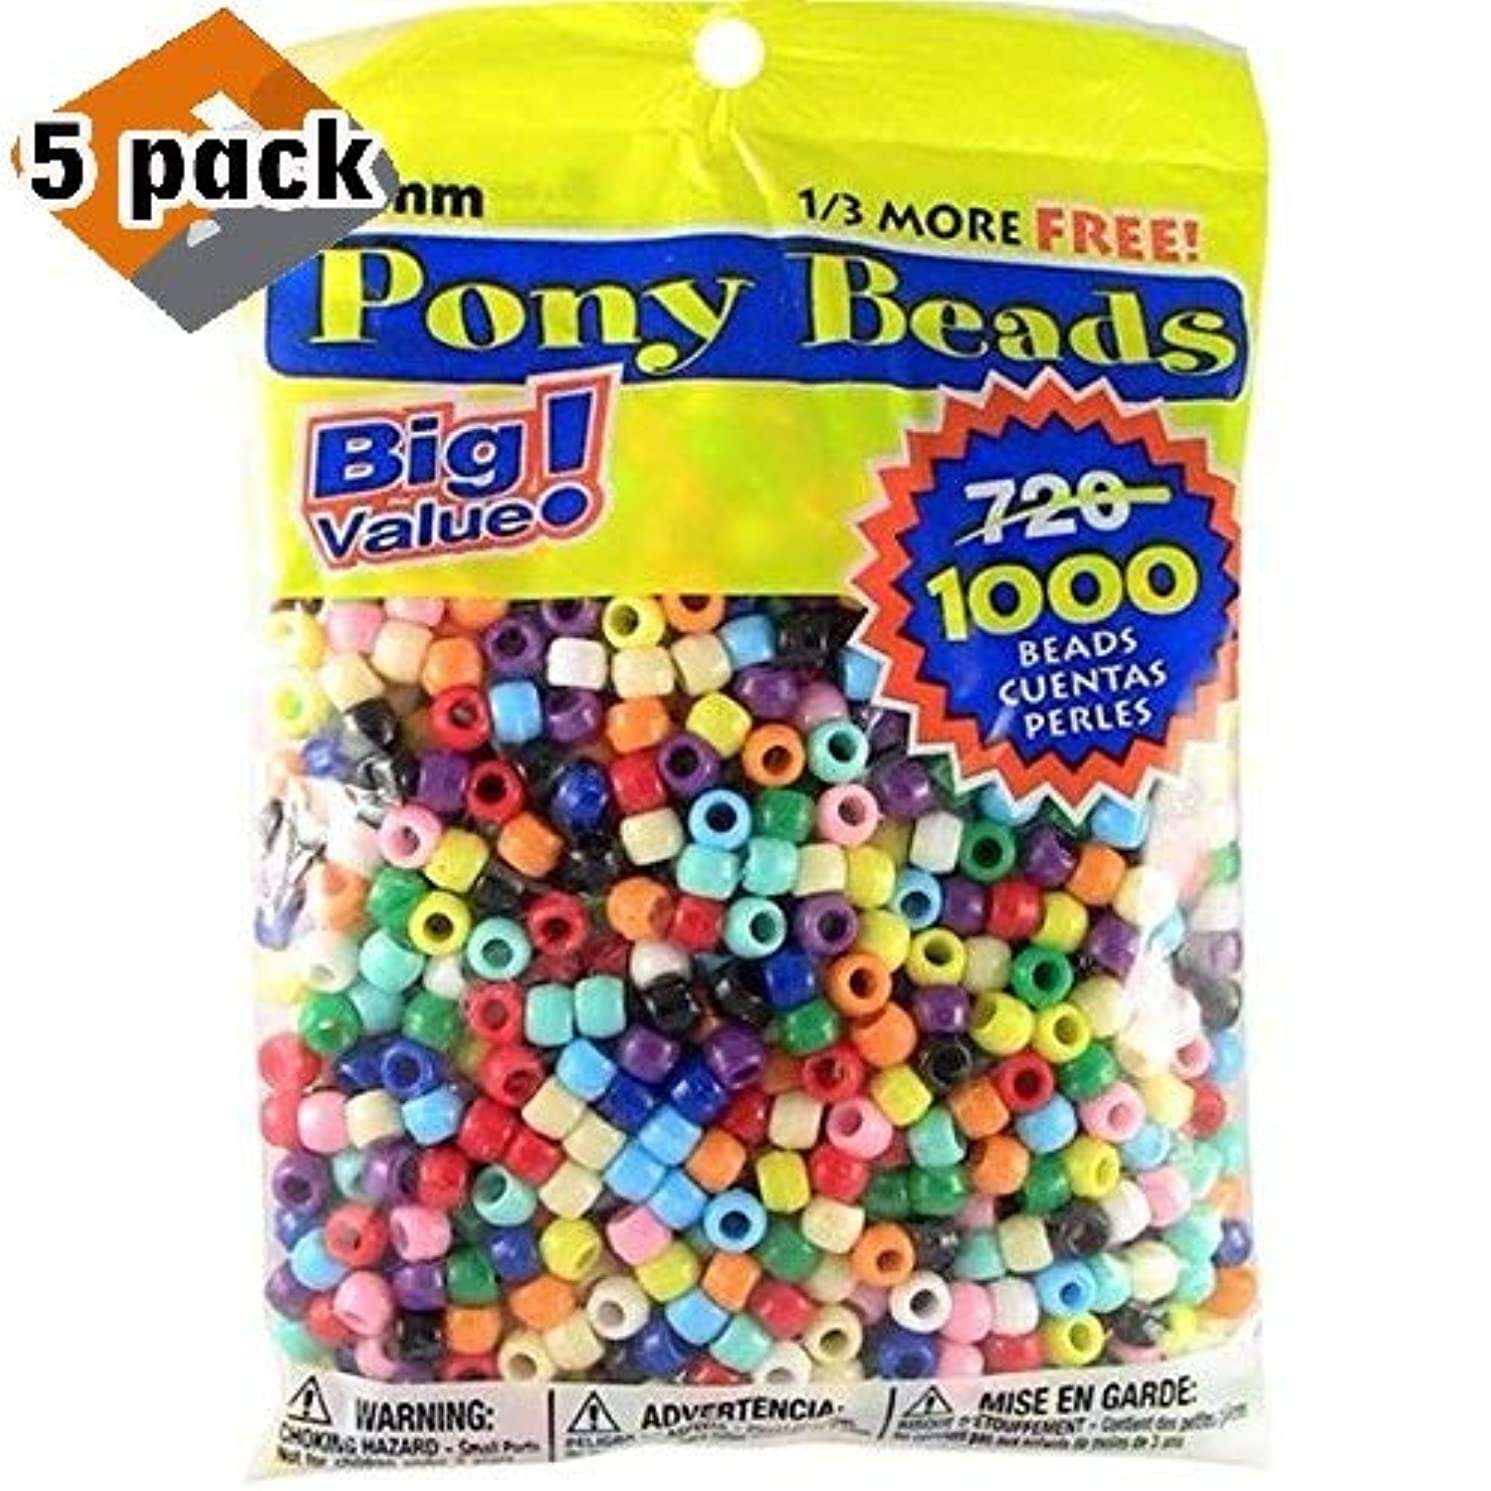 Darice Pony Beads Multi Color 9mm 1000 Pcs in Bag, Pack 5